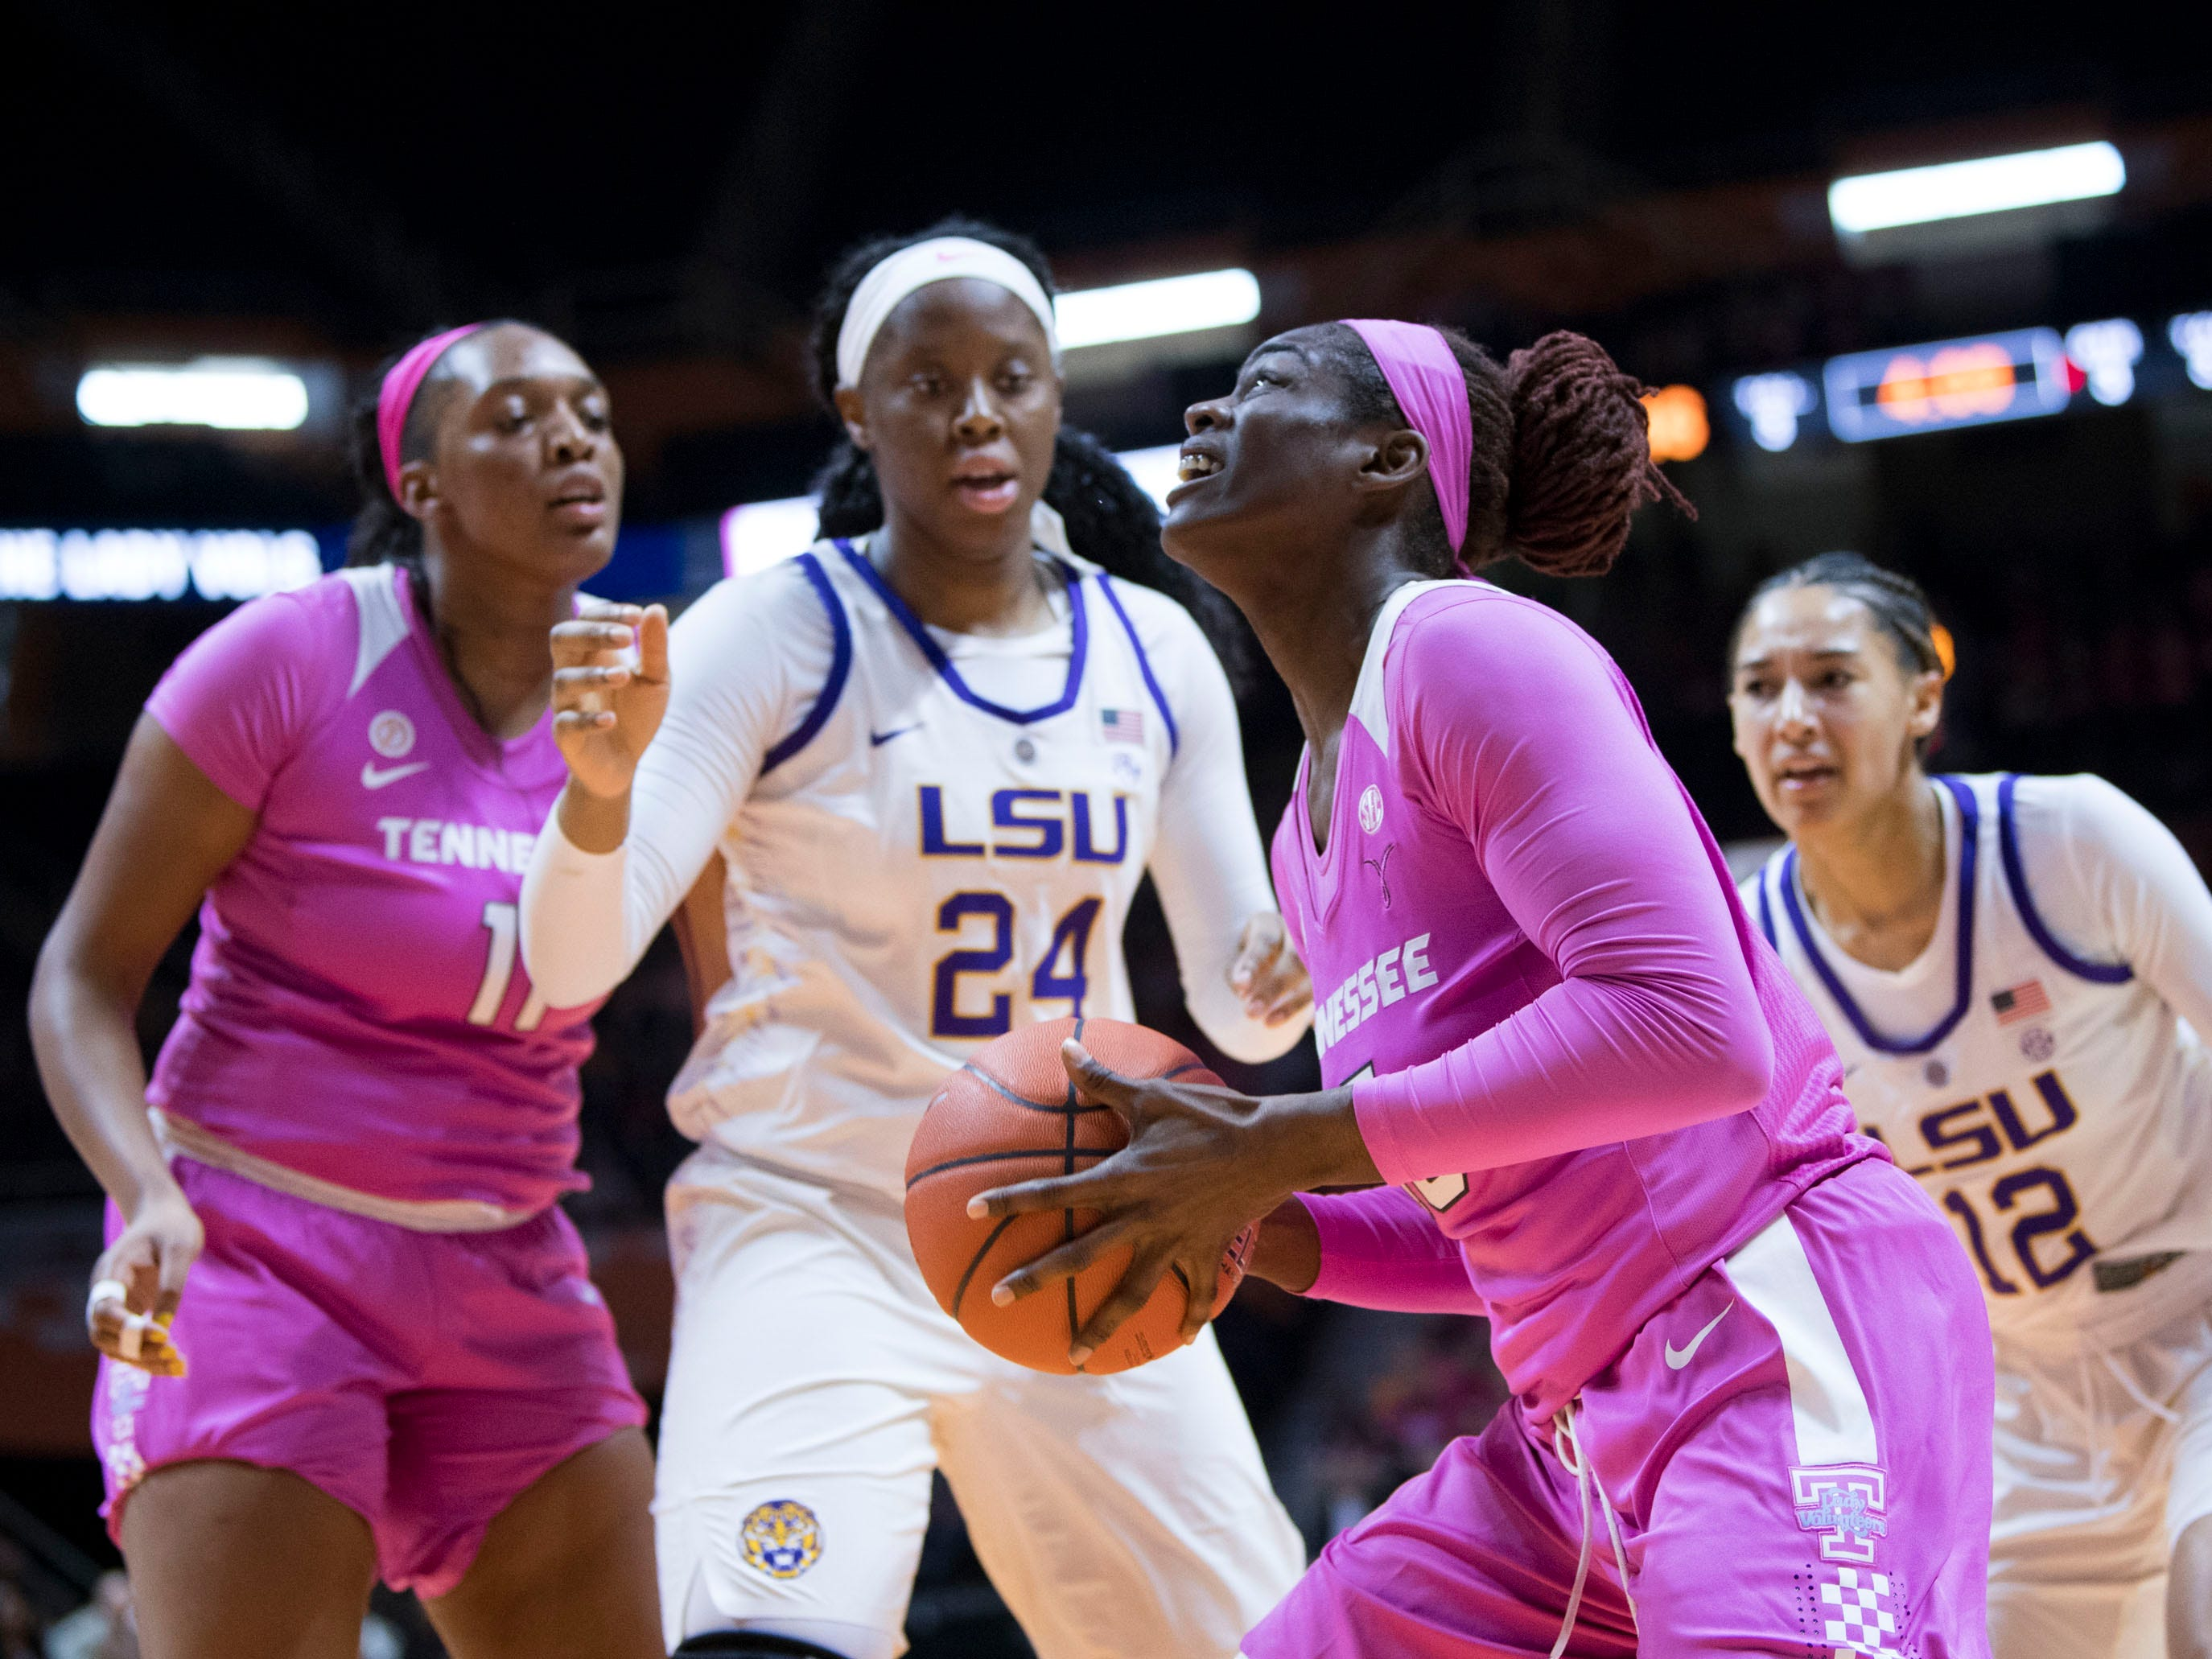 Tennessee's Cheridene Green (15) looks to the basket while guarded by LSU's Faustine Aifuwa (24) on Sunday, January 27, 2019.